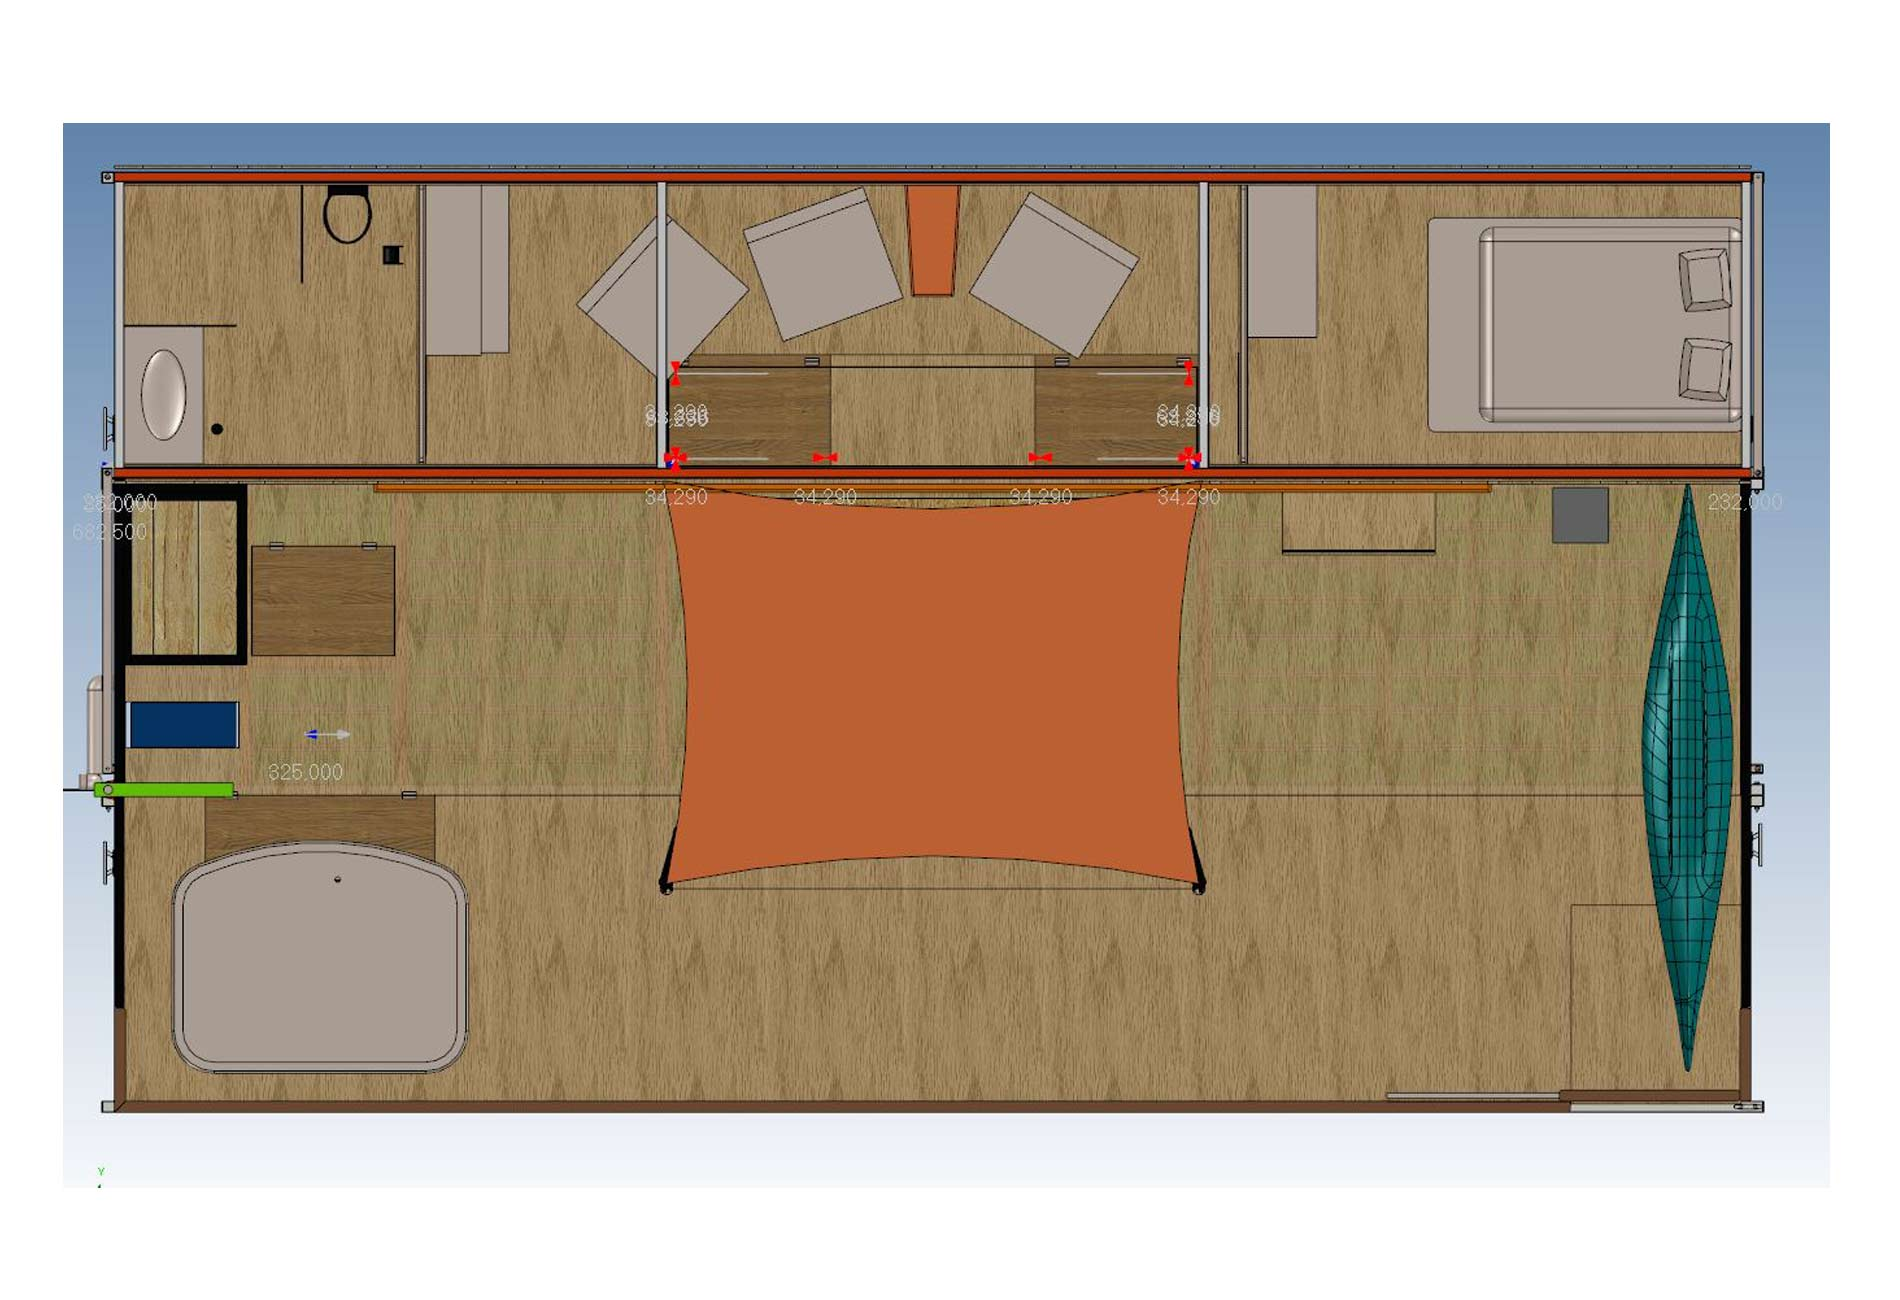 HouseBoat-Architect-Vincent-Lebailly-Format-container-floating house-Innovation